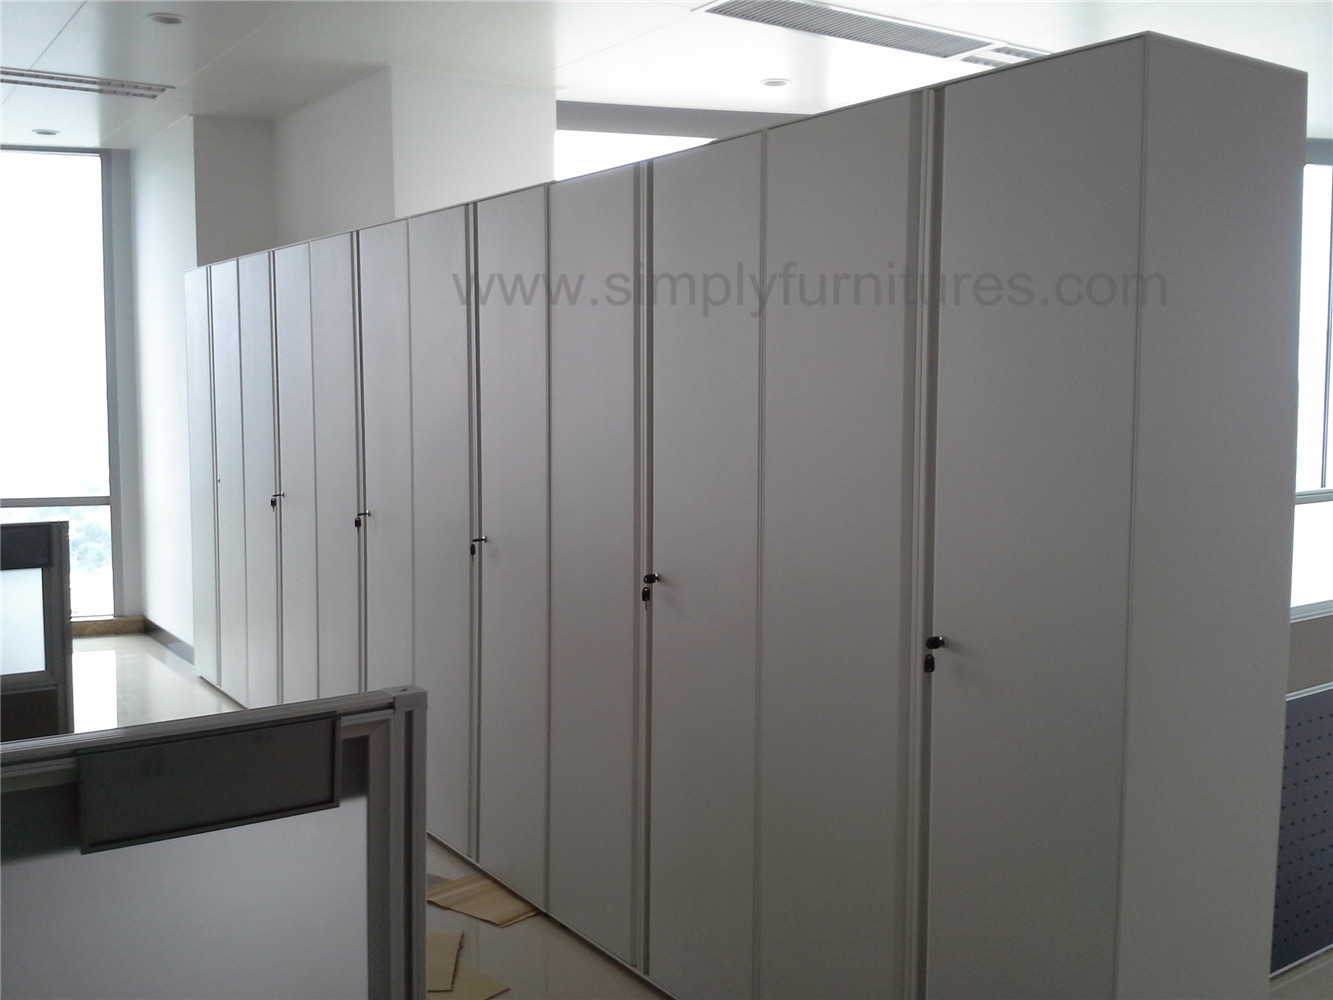 1.8m recess handle swing door cabinet